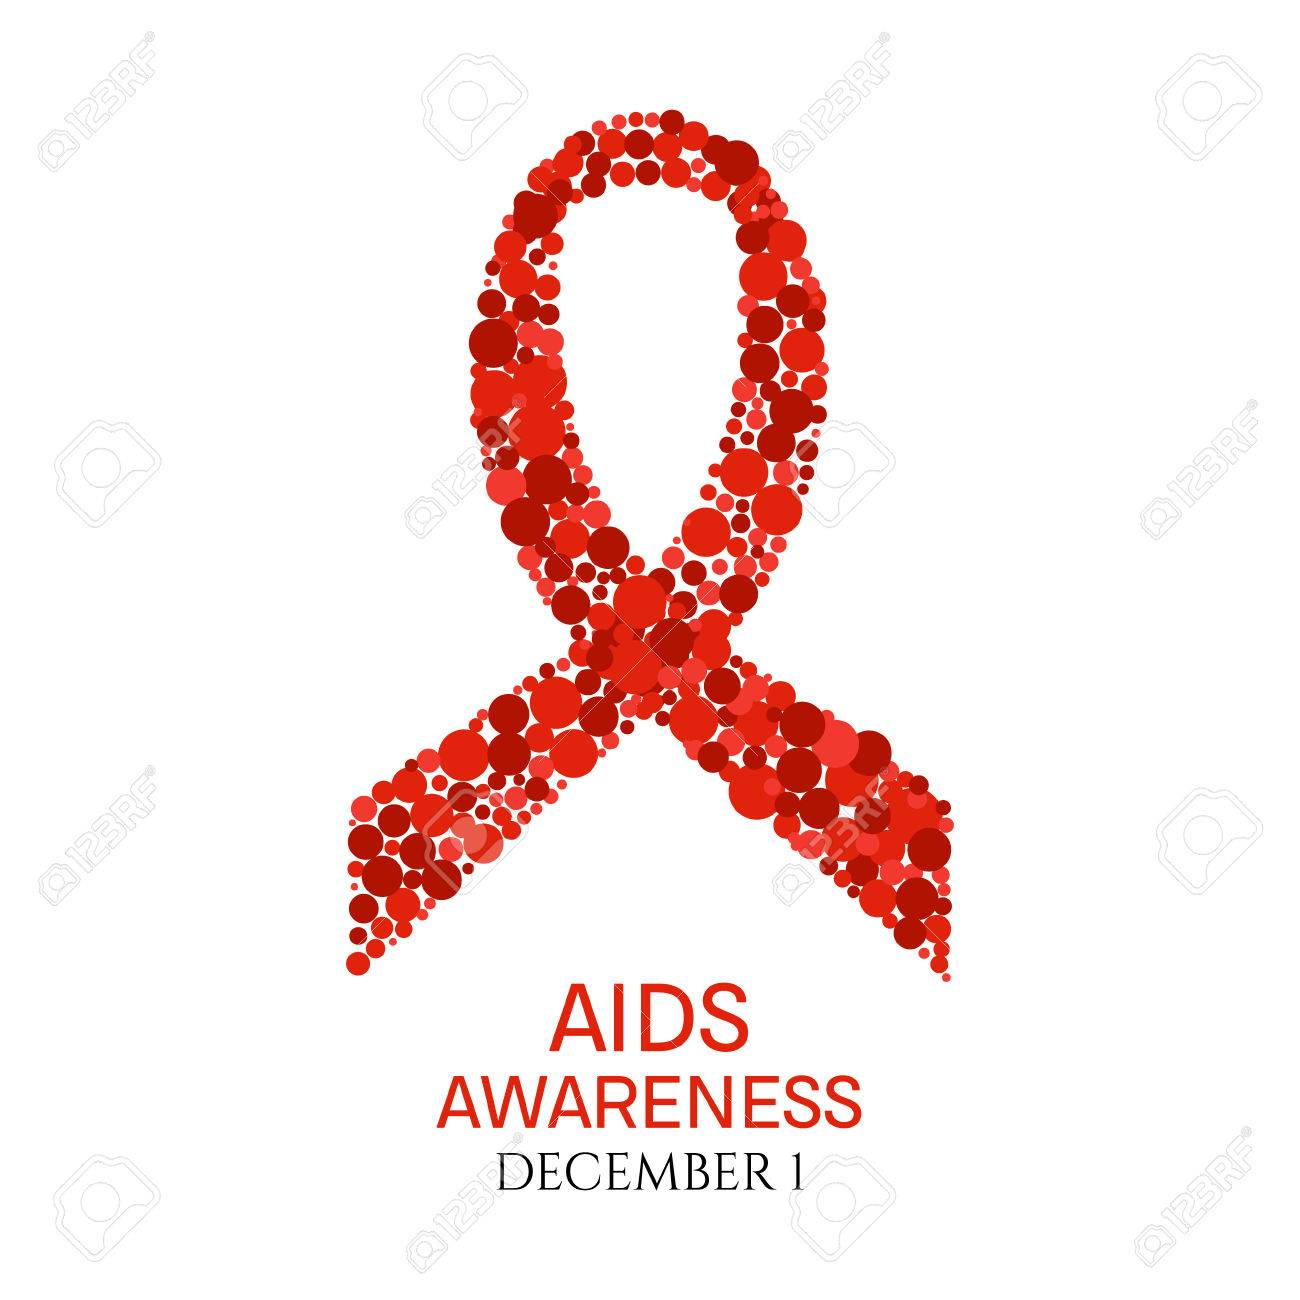 AIDS Awareness Poster. World AIDS Day Symbol. Red Ribbon Made ...